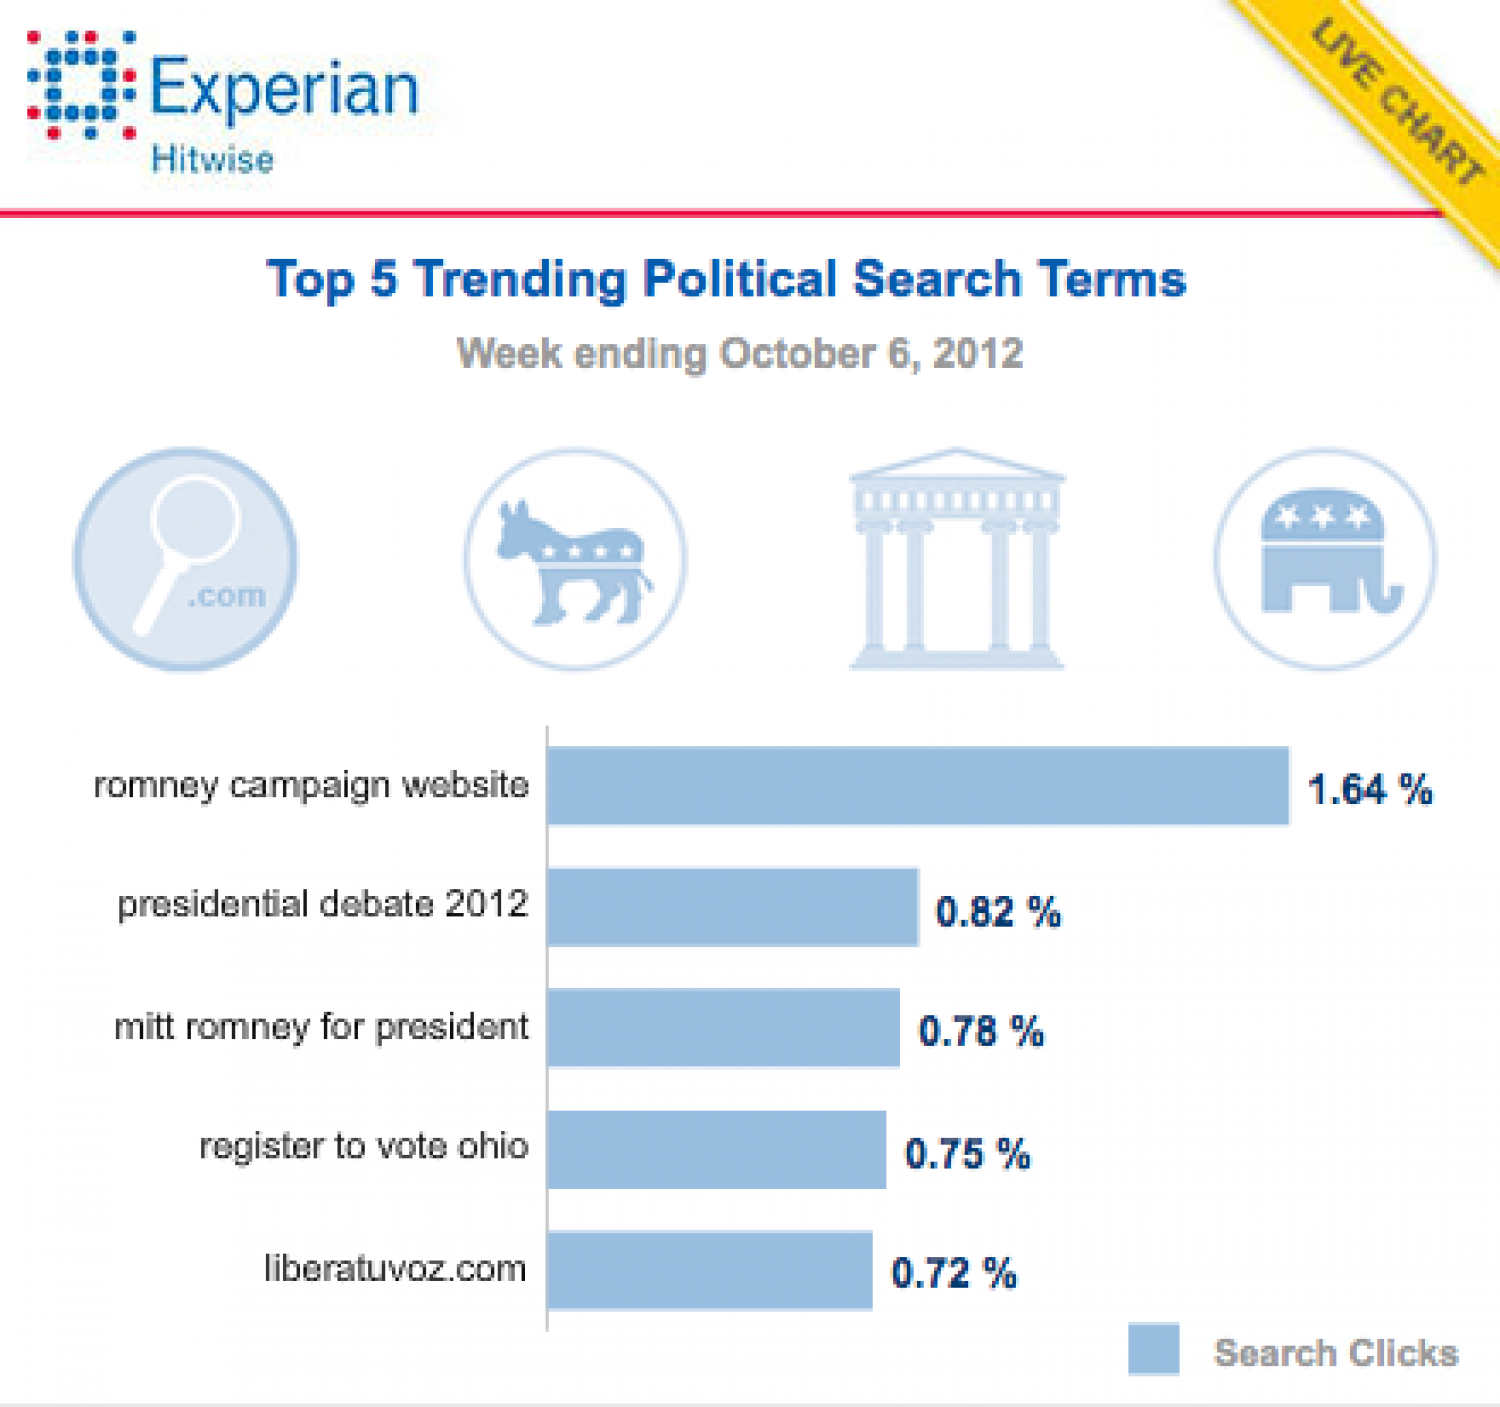 Top 5 Trending Political Search Terms Infographic